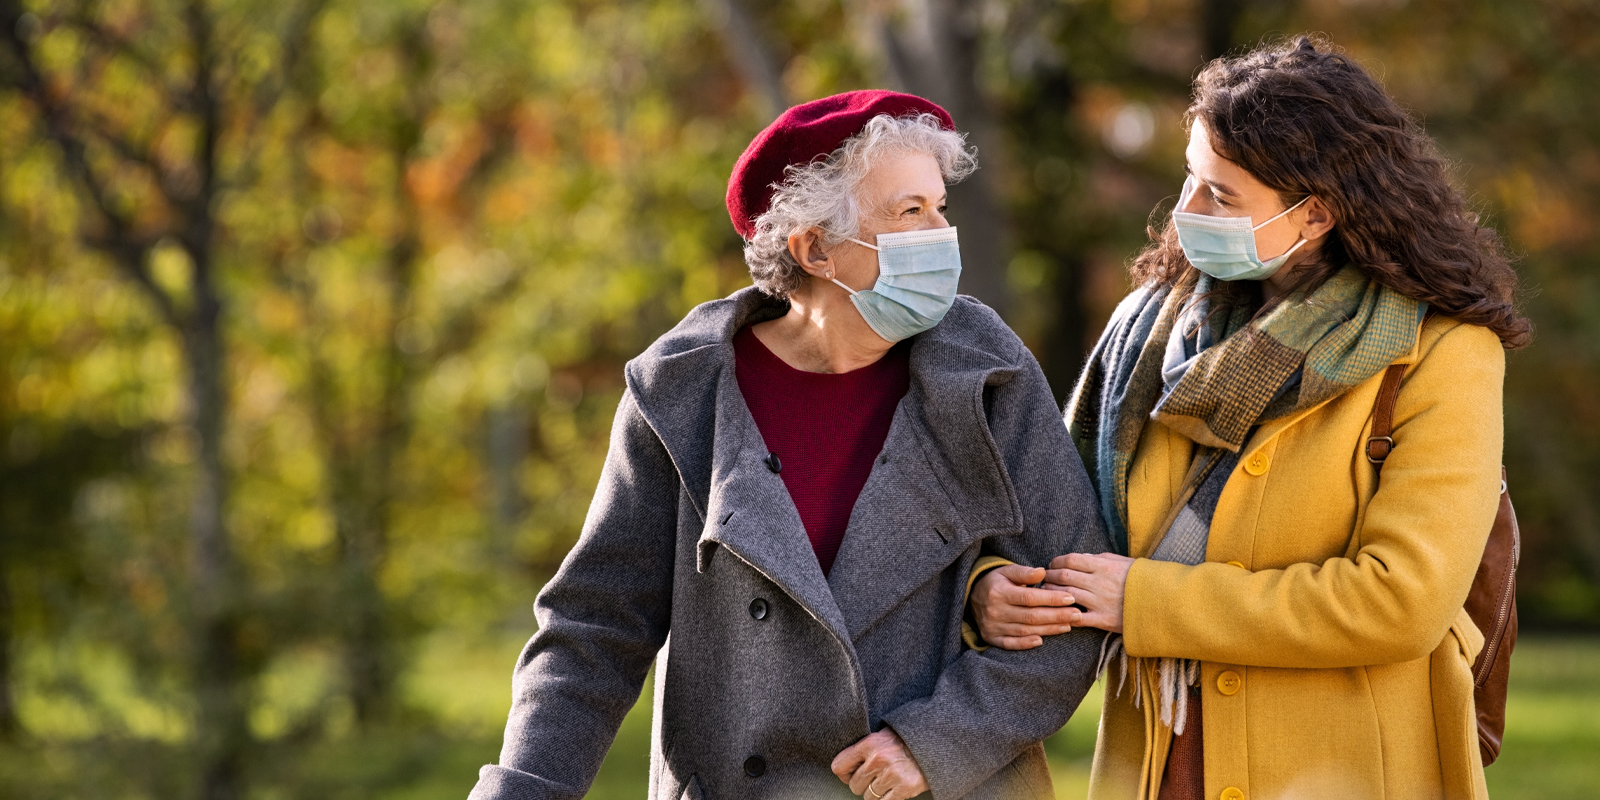 An image of a younger woman walking an older woman